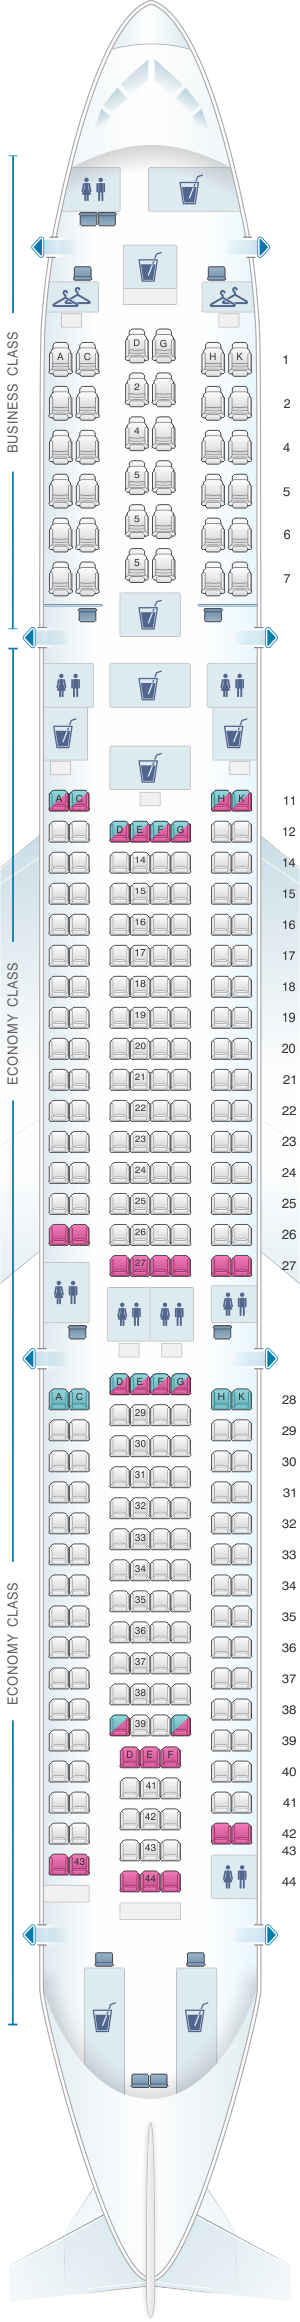 Seat map for Malaysia Airlines Airbus A330 300 Config.1